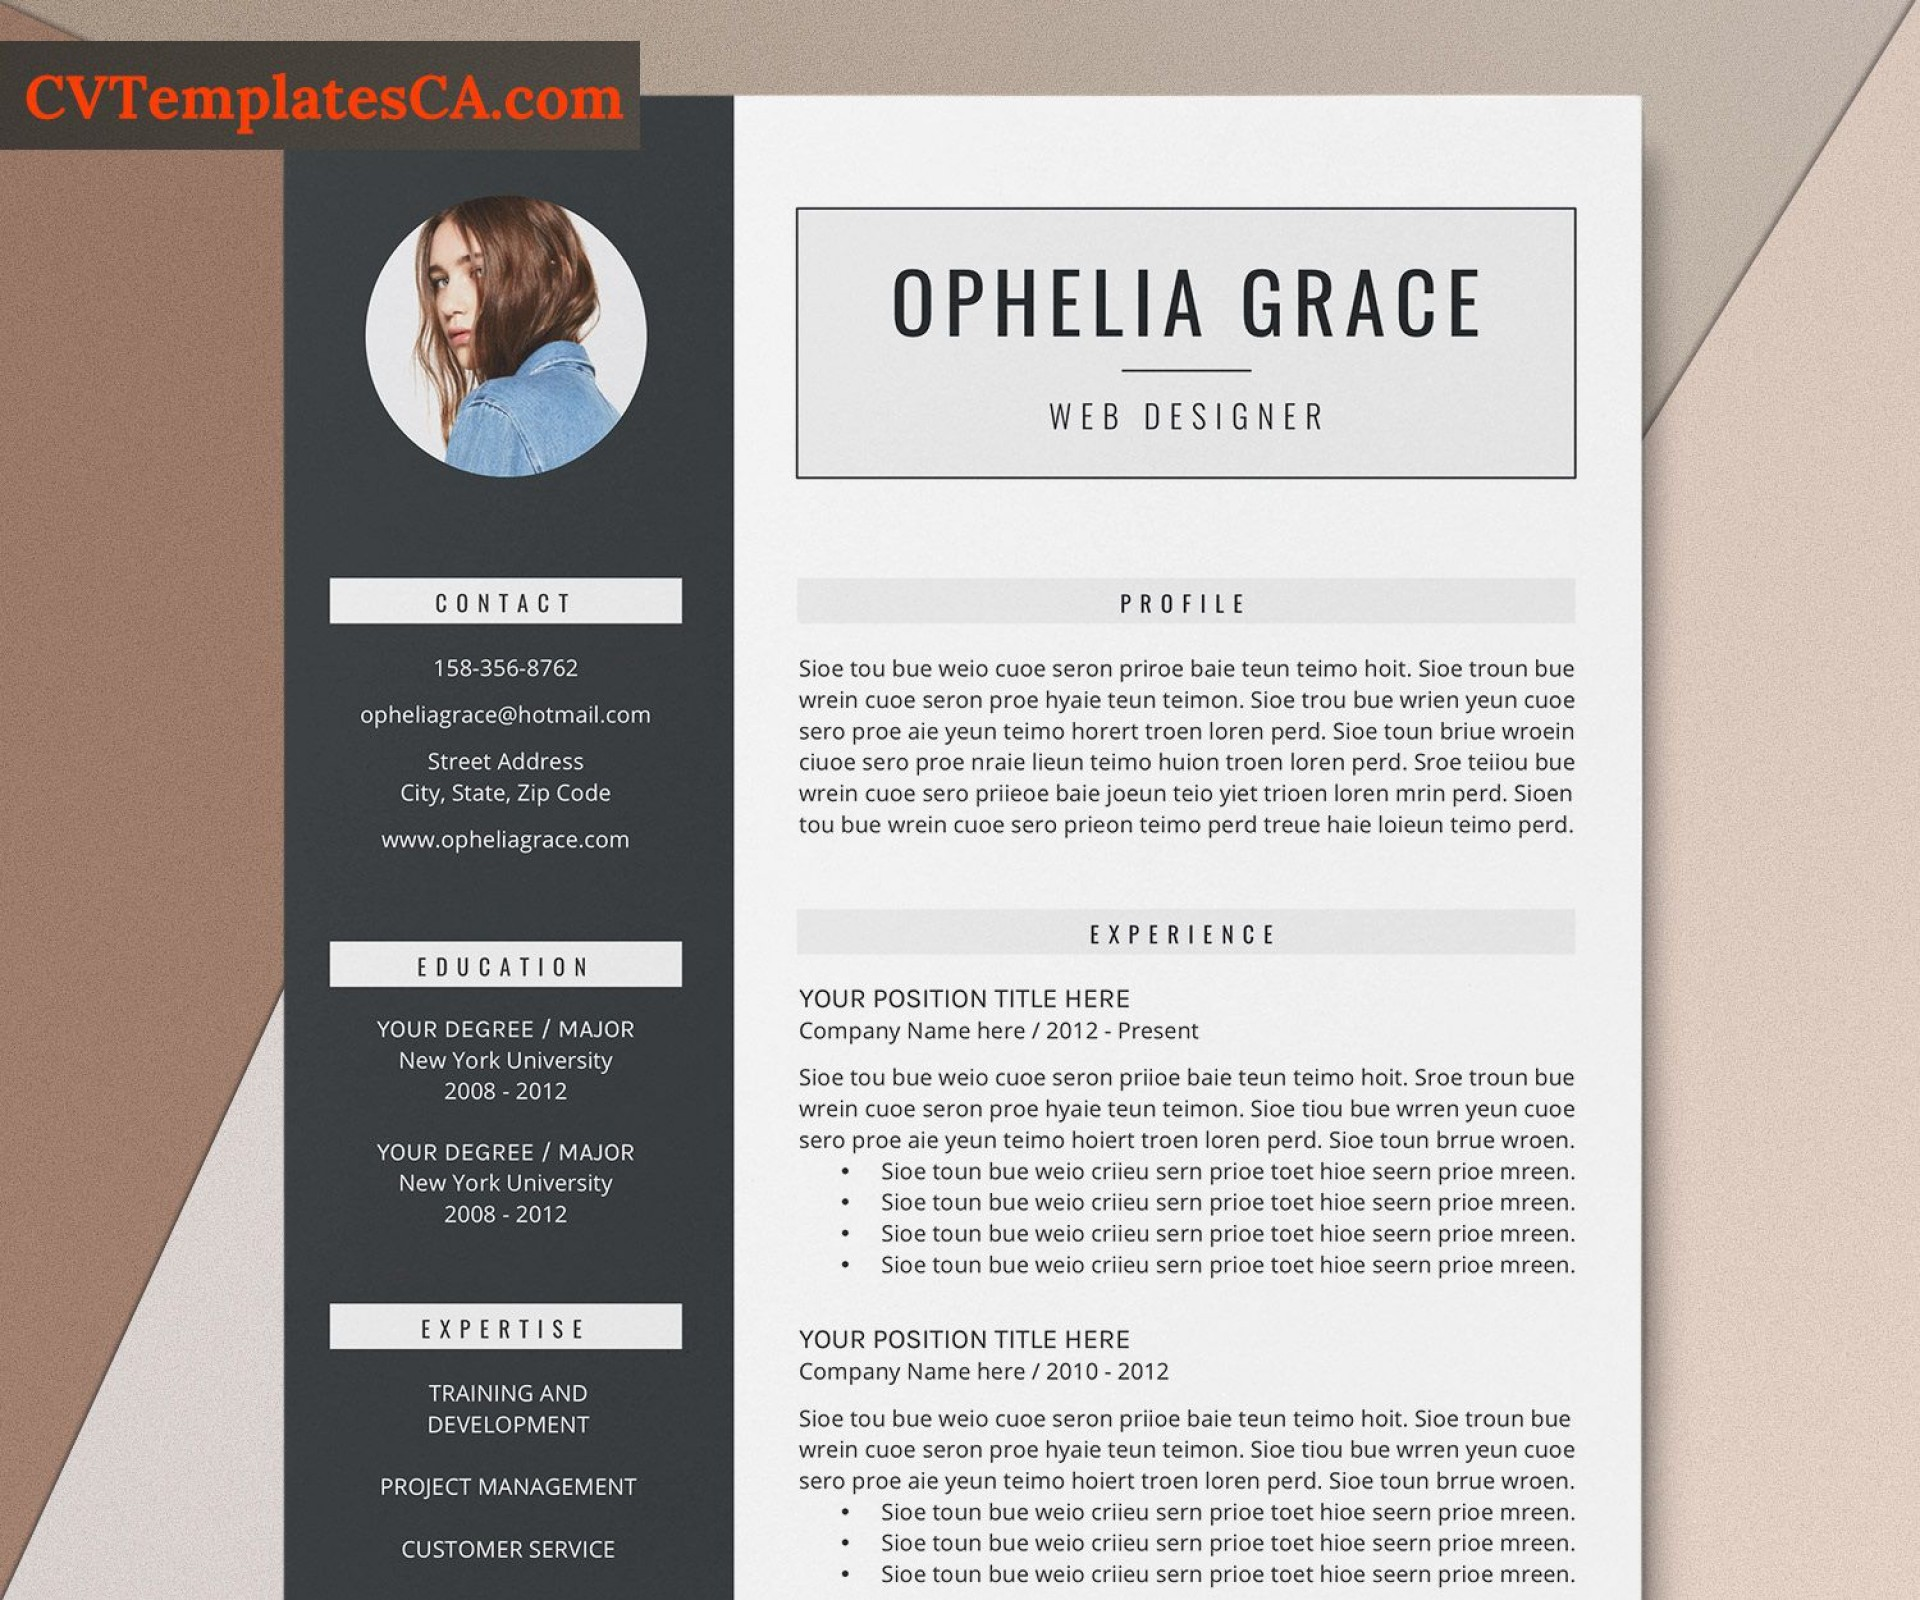 002 Outstanding Simple Professional Cv Template Word High Definition 1920